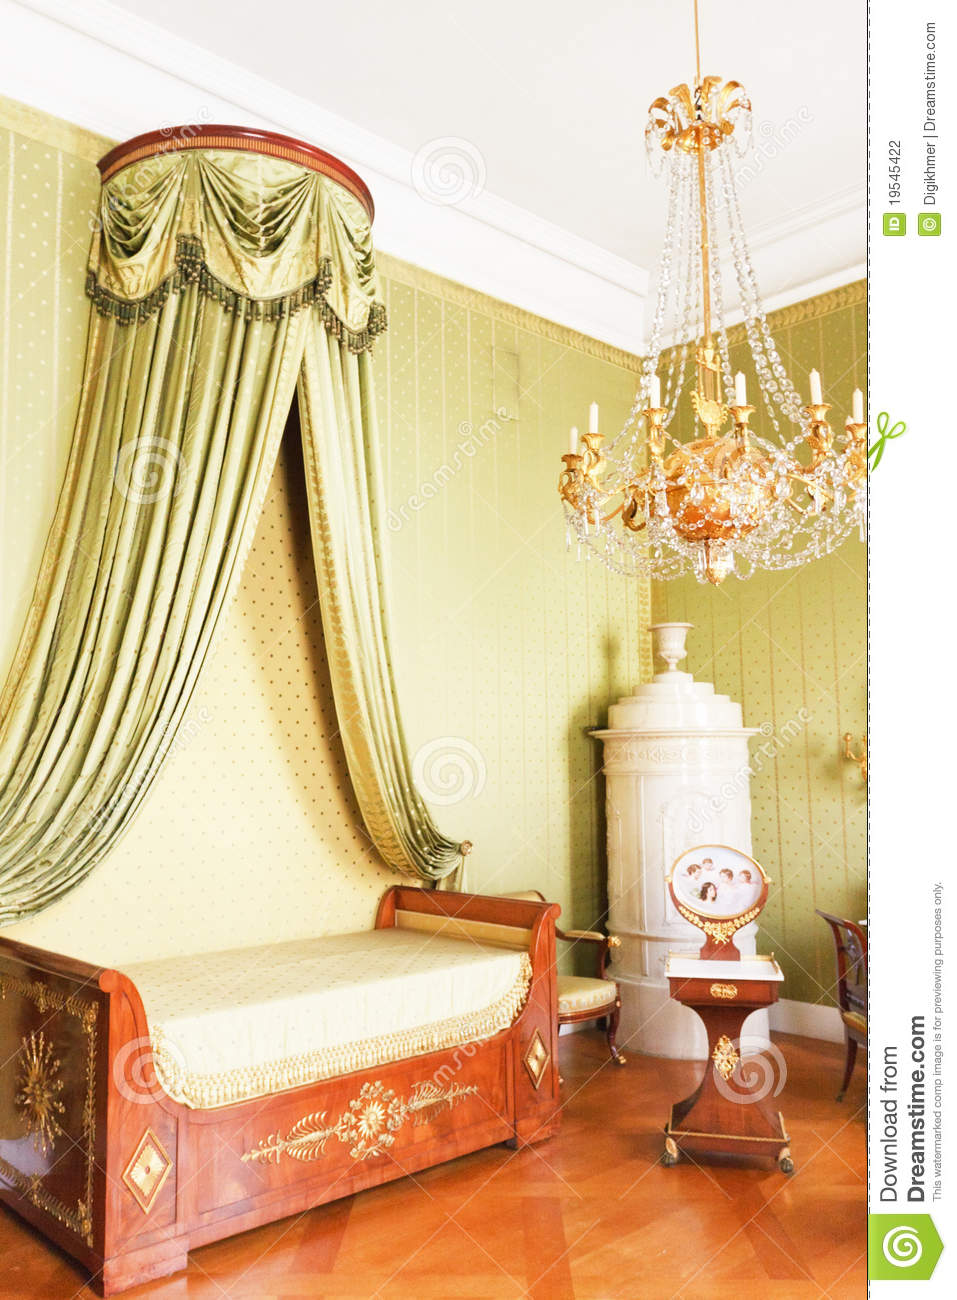 Bedroom With Royal Canopy Bed Stock Photography Image